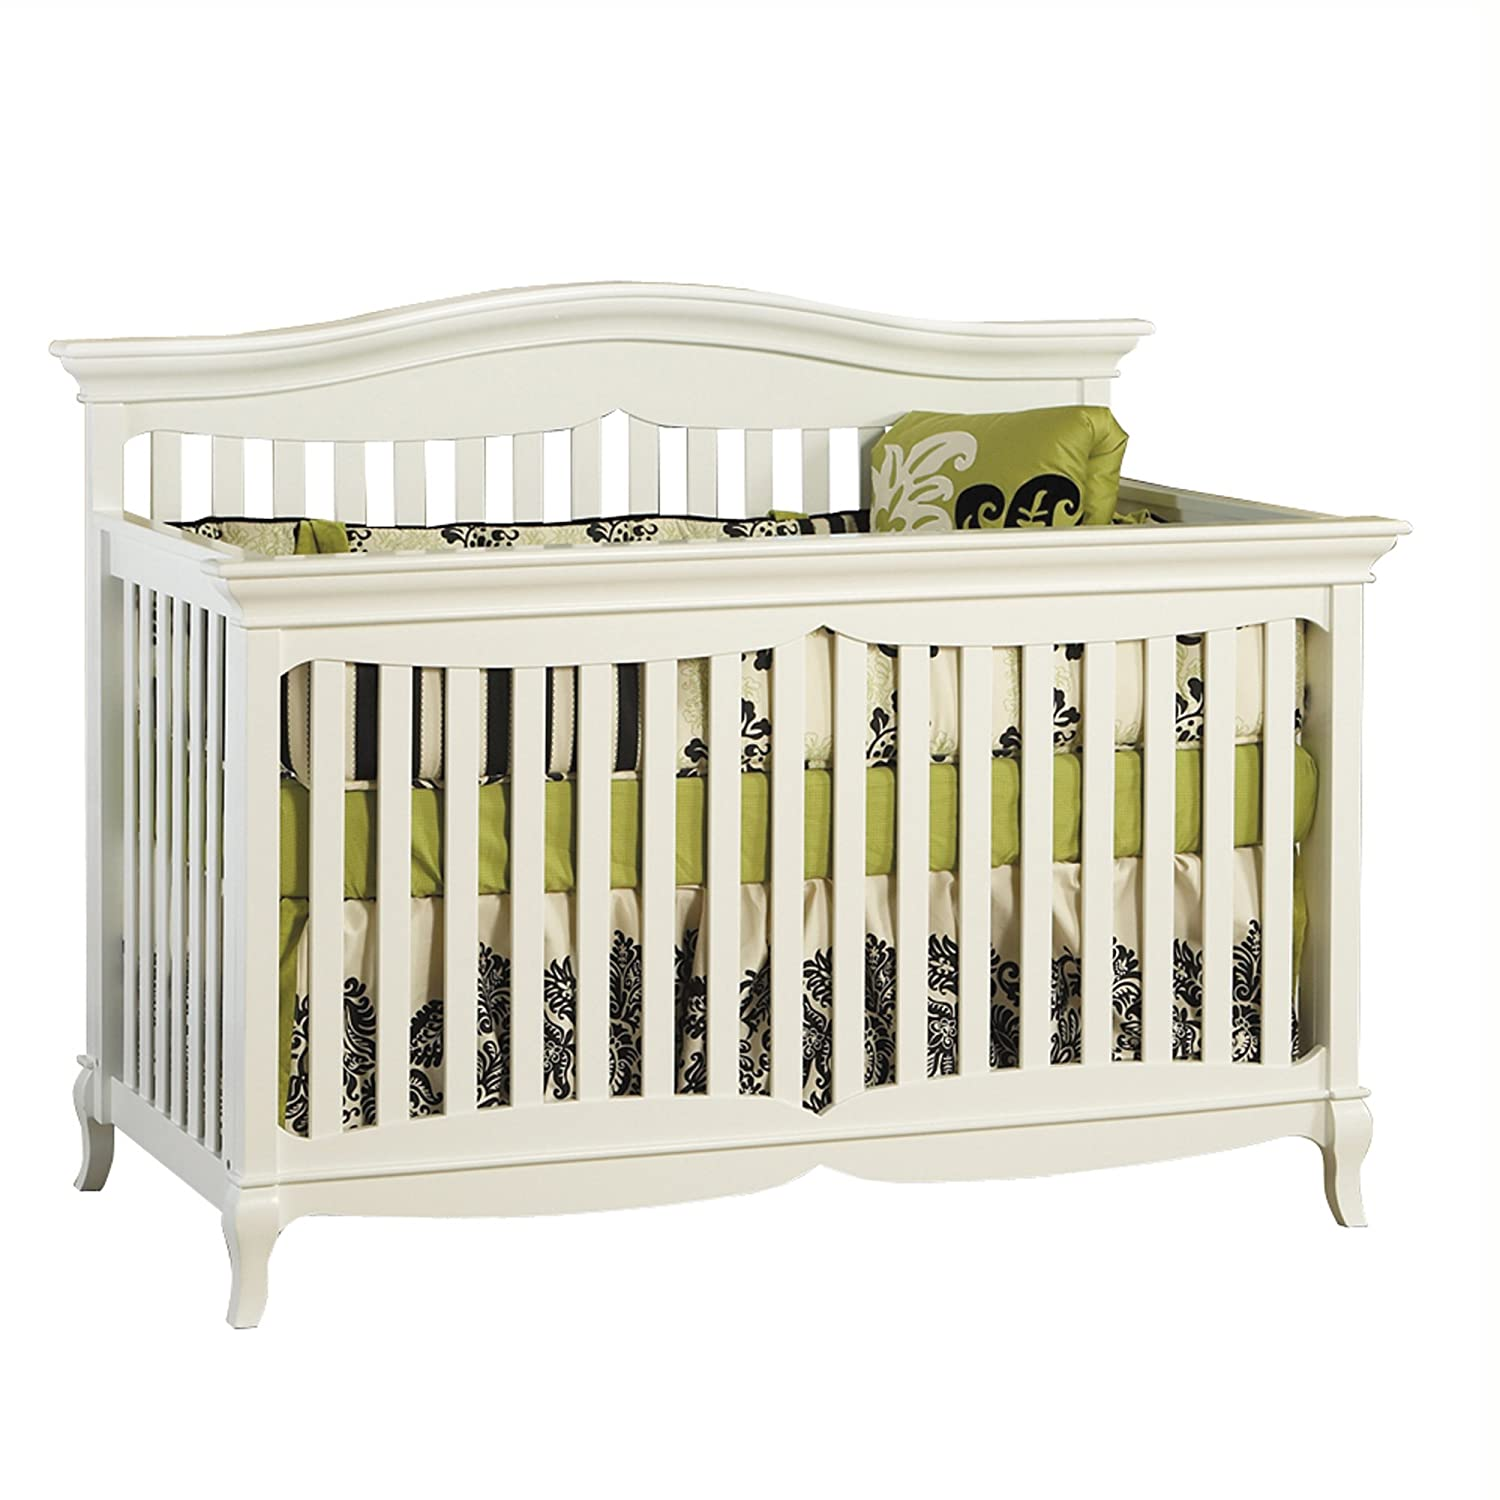 Pali crib for sale used - Amazon Com Pali Mantova 4 In 1 Convertible Forever Crib In White Baby